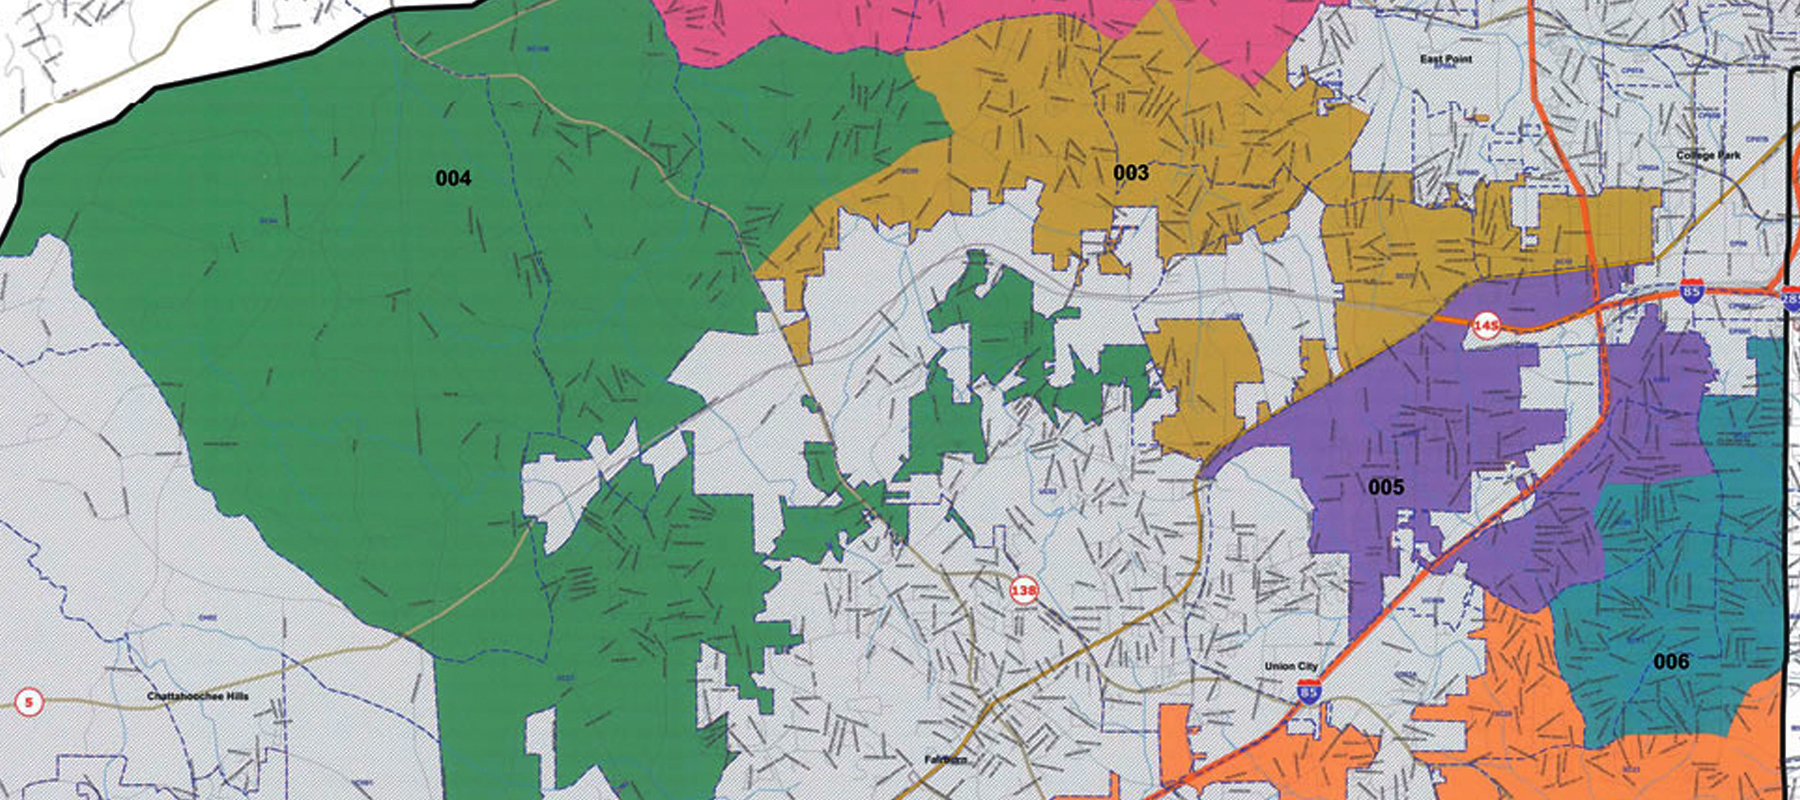 Background on South Fulton Cityhood -